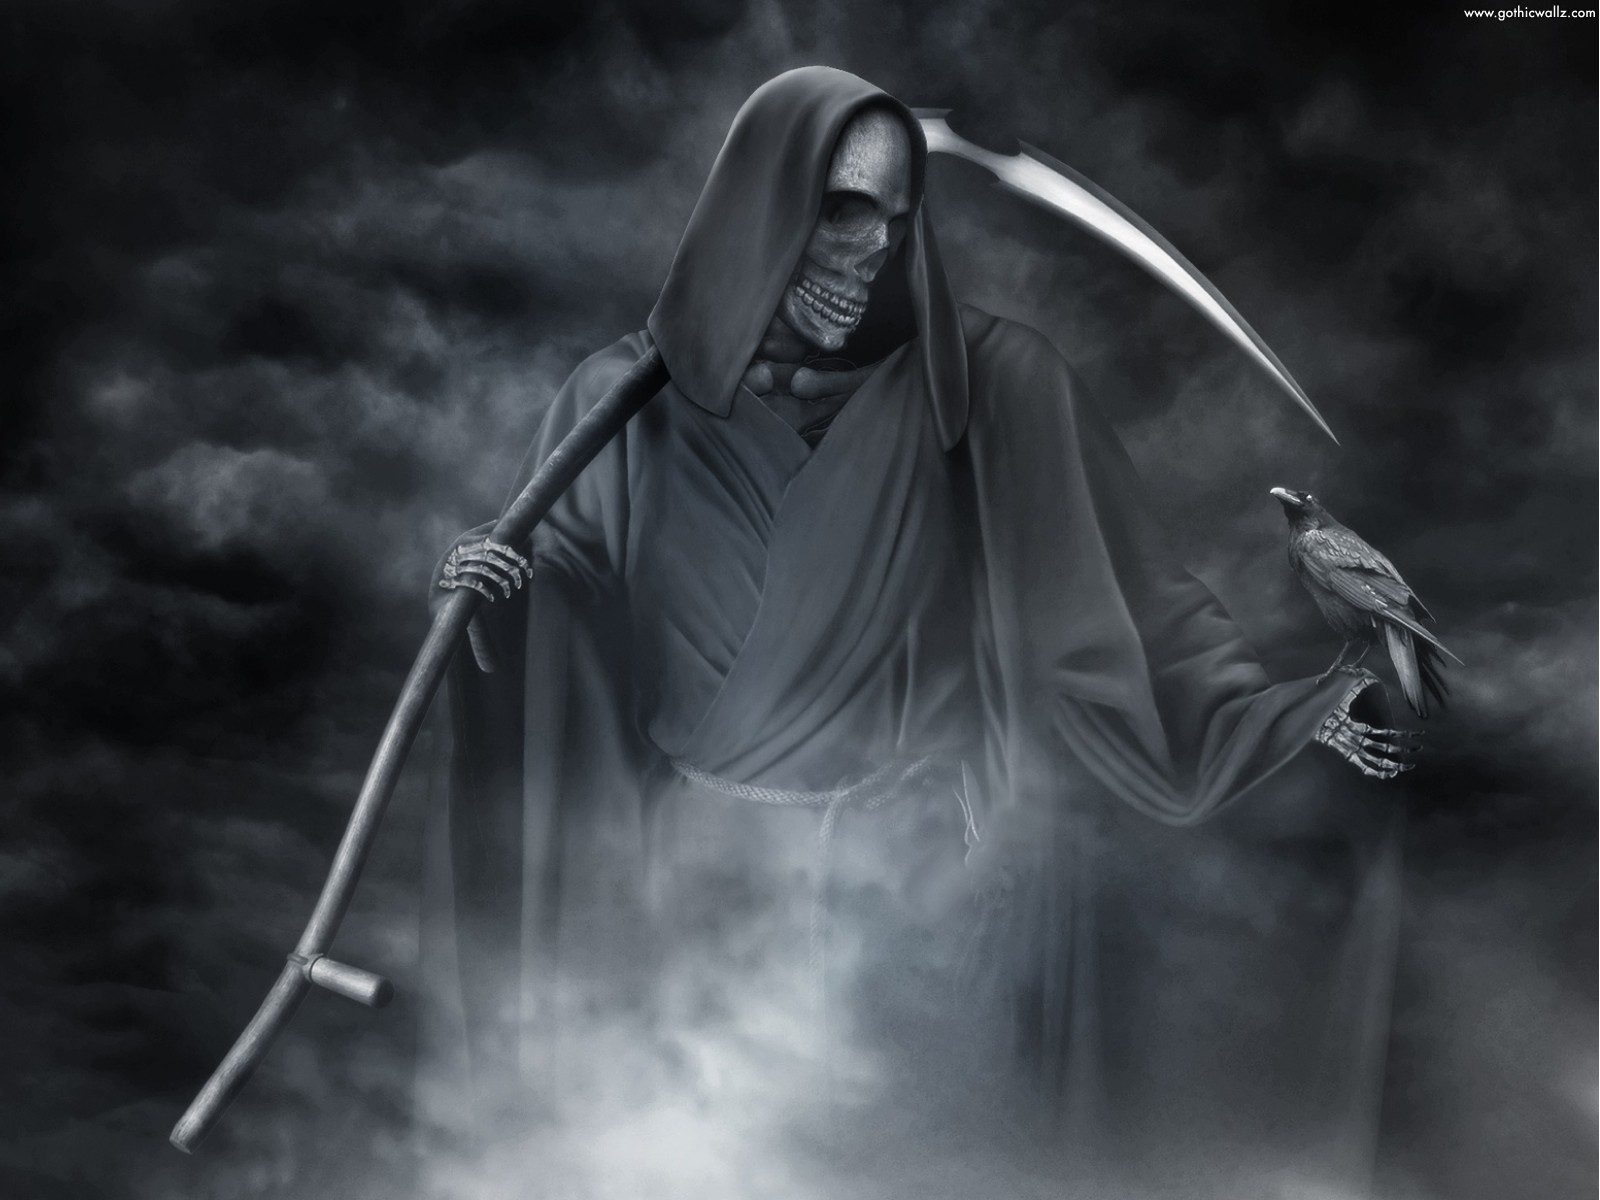 Grim Reaper With Crow | Gothic Wallpaper Download